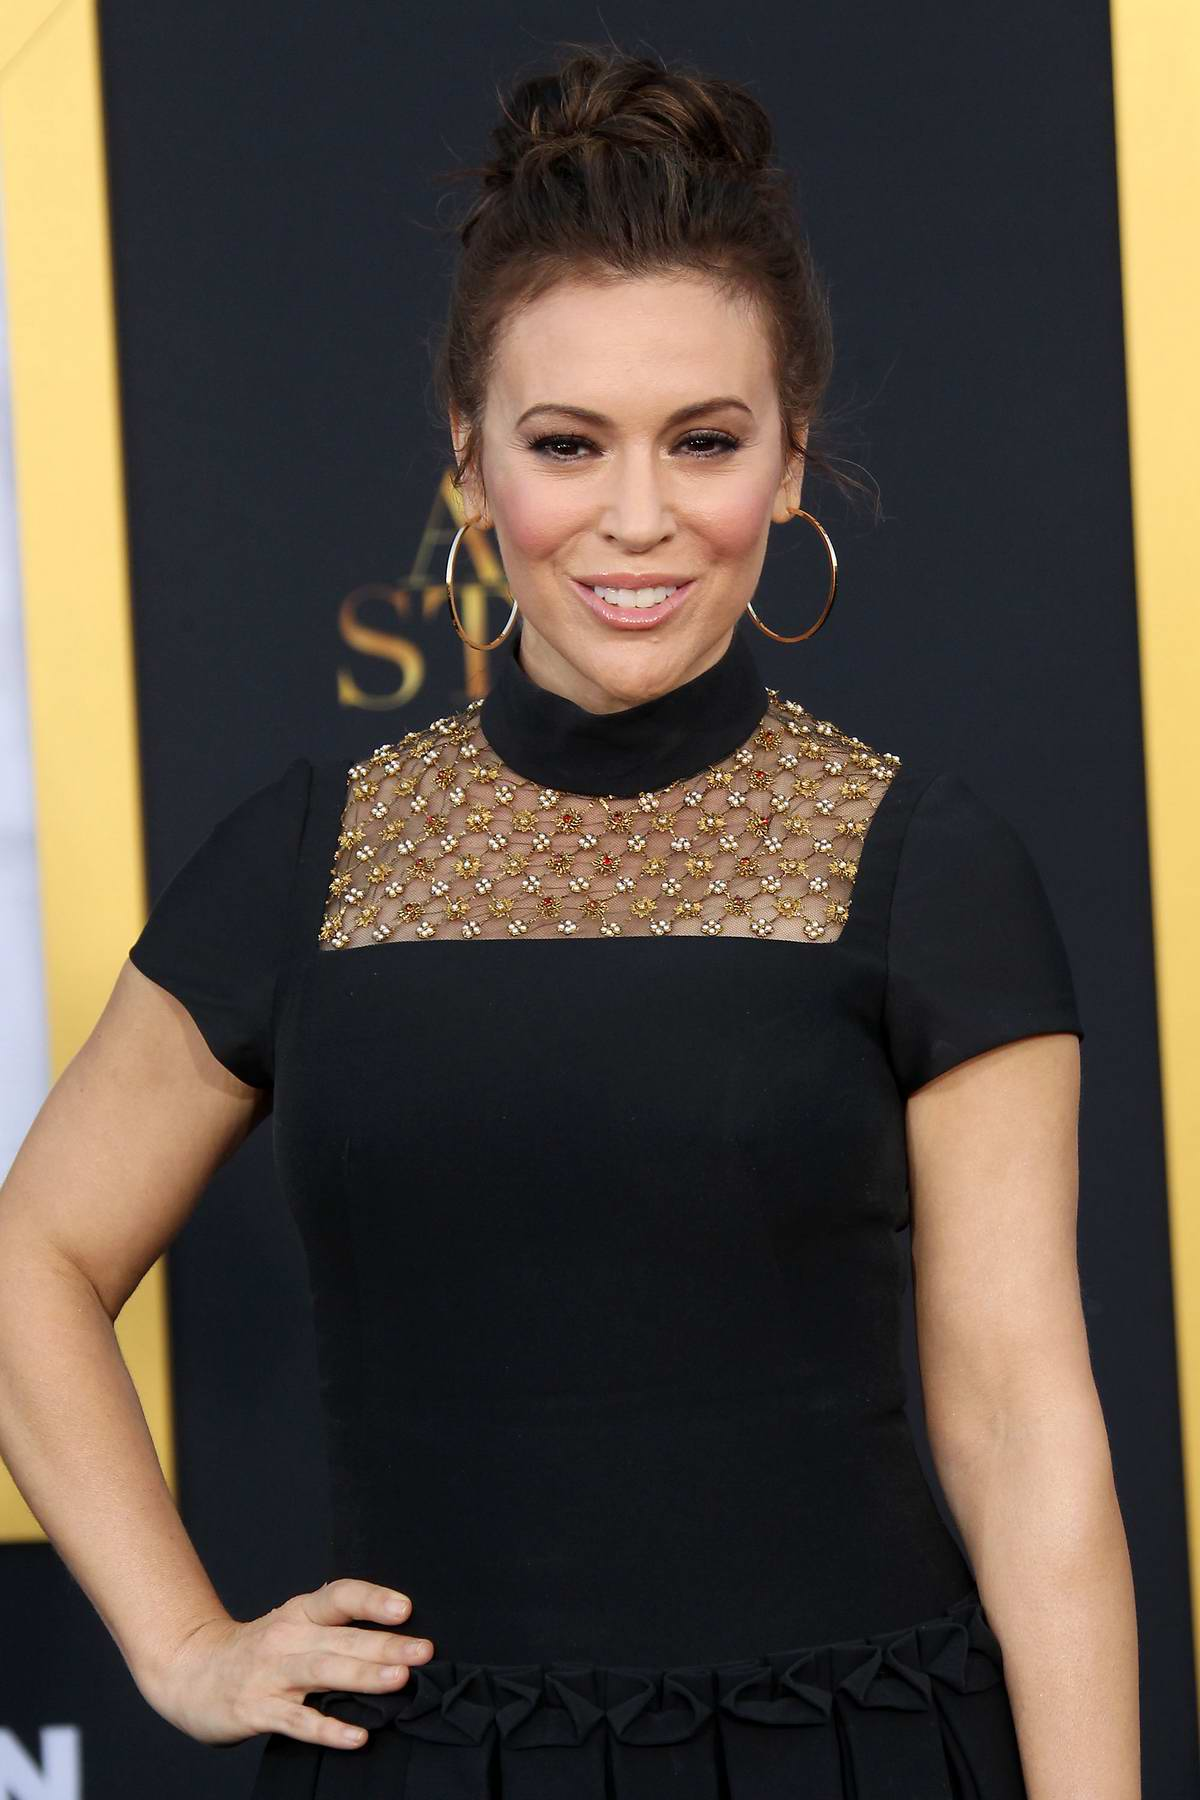 Alyssa Milano attends 'A Star Is Born' film premiere at Shrine Auditorium in Los Angeles